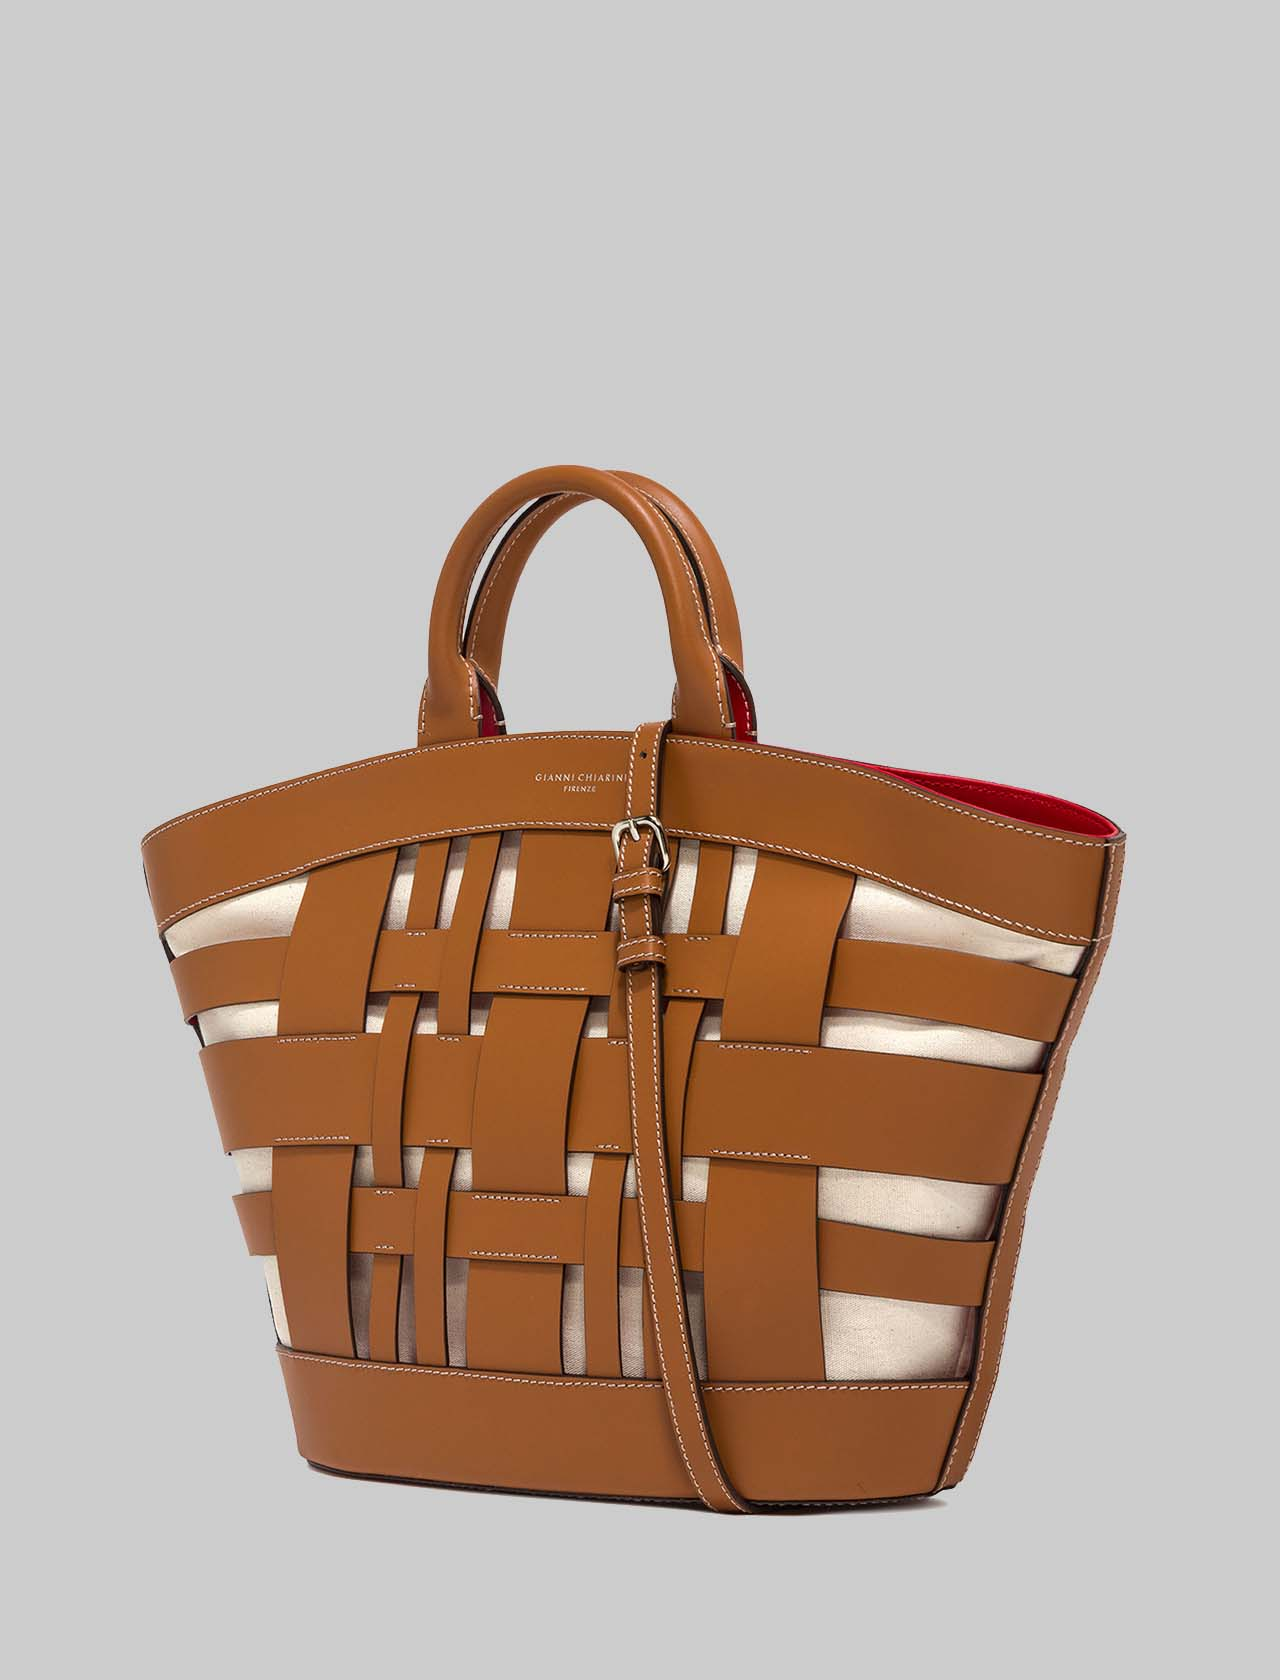 Gea Woman Bag in Braided Leather and Canvas with Hand Handles and Shoulder Strap Gianni Chiarini   Bags and backpacks   BS848611893